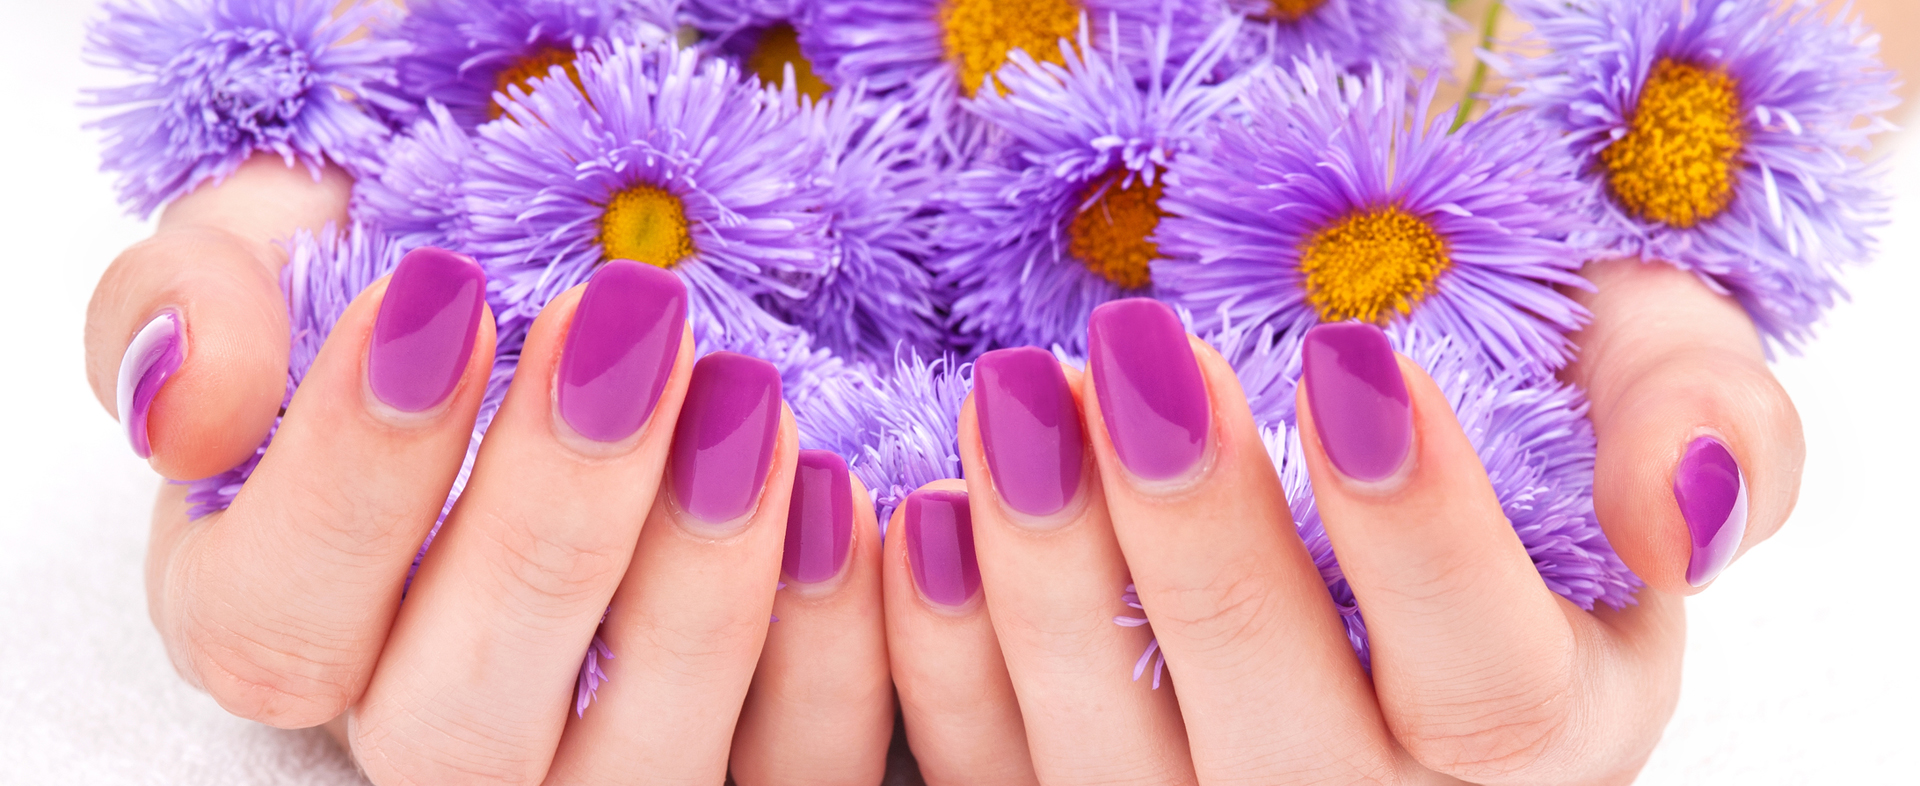 Pretty Nails | Nails salon in Houston TX 77065